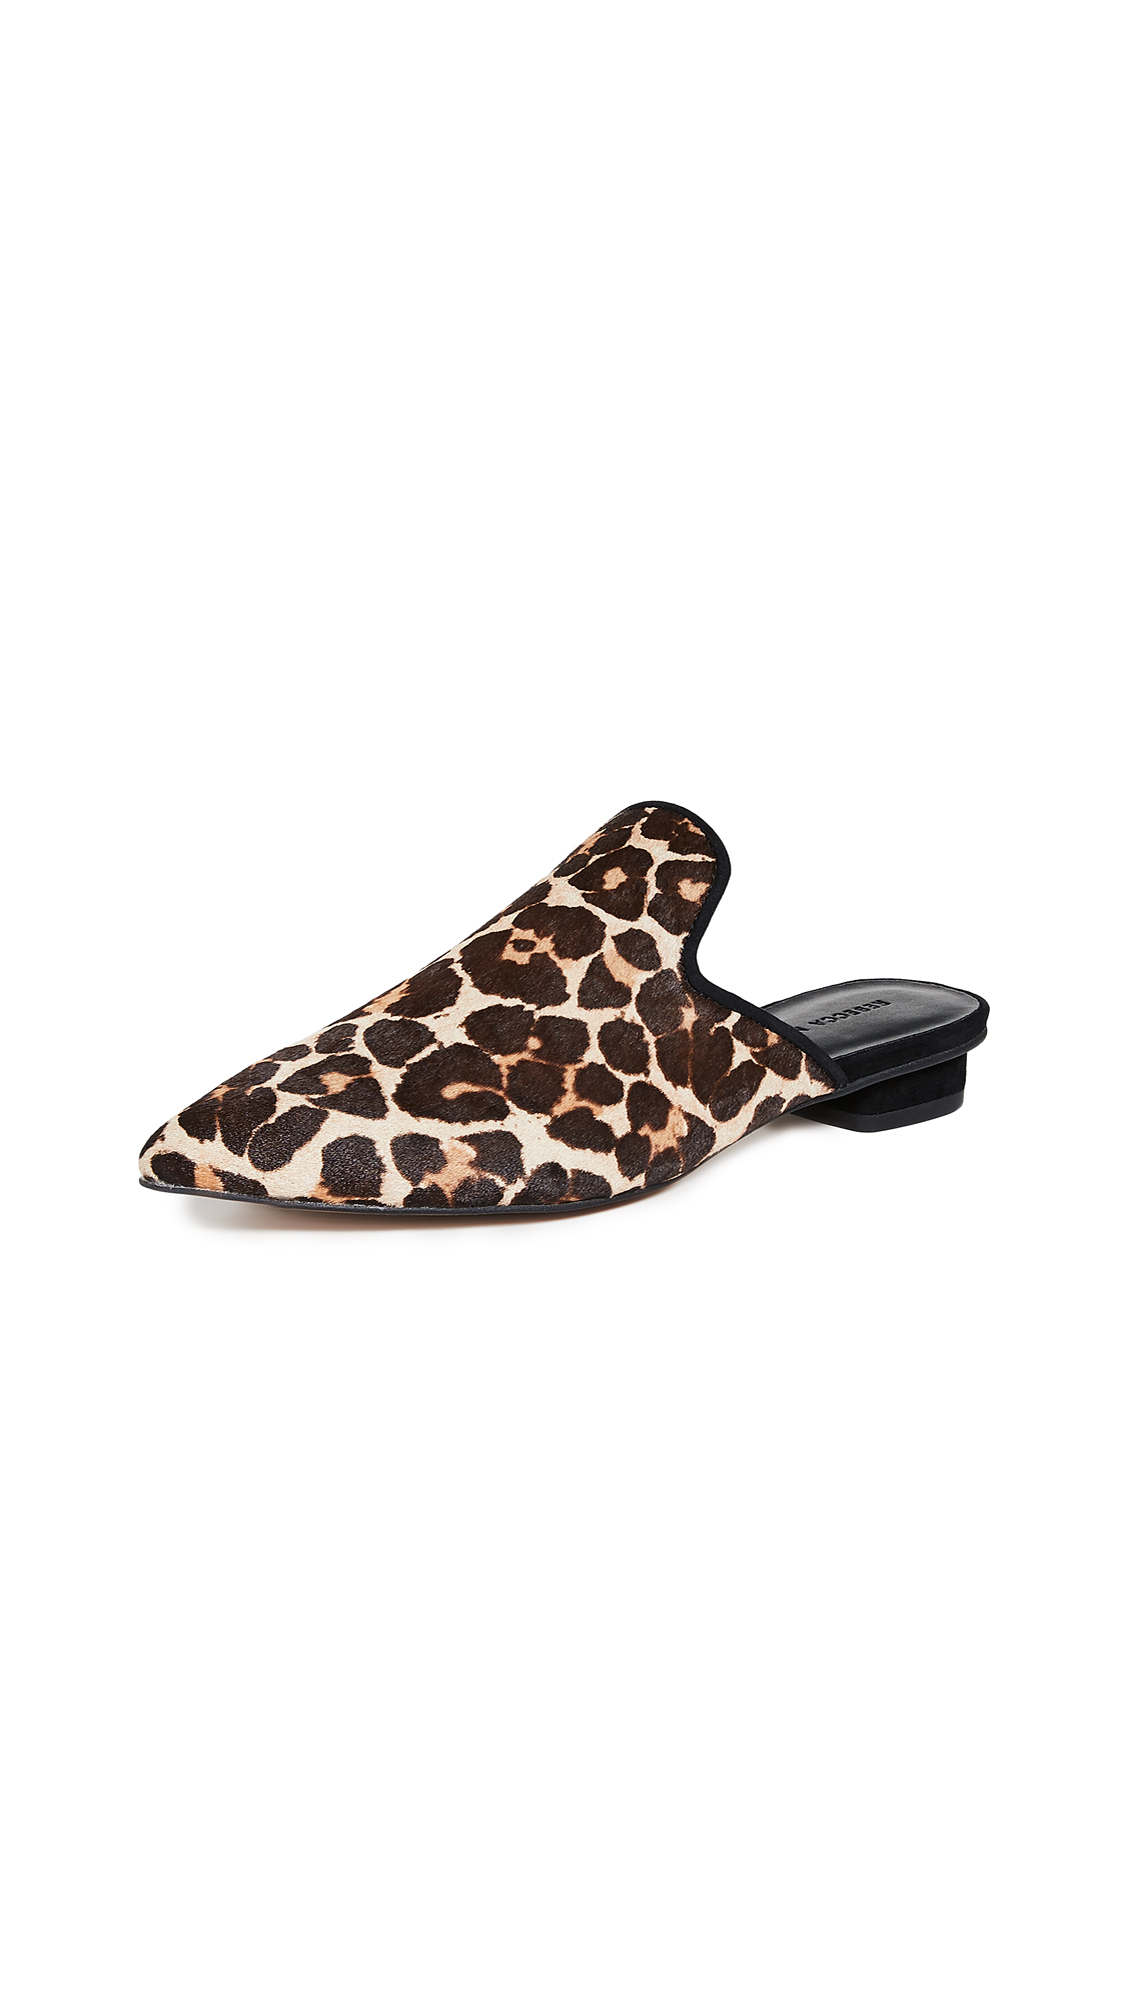 Rebecca Minkoff Chamille Too Mules - Leopard